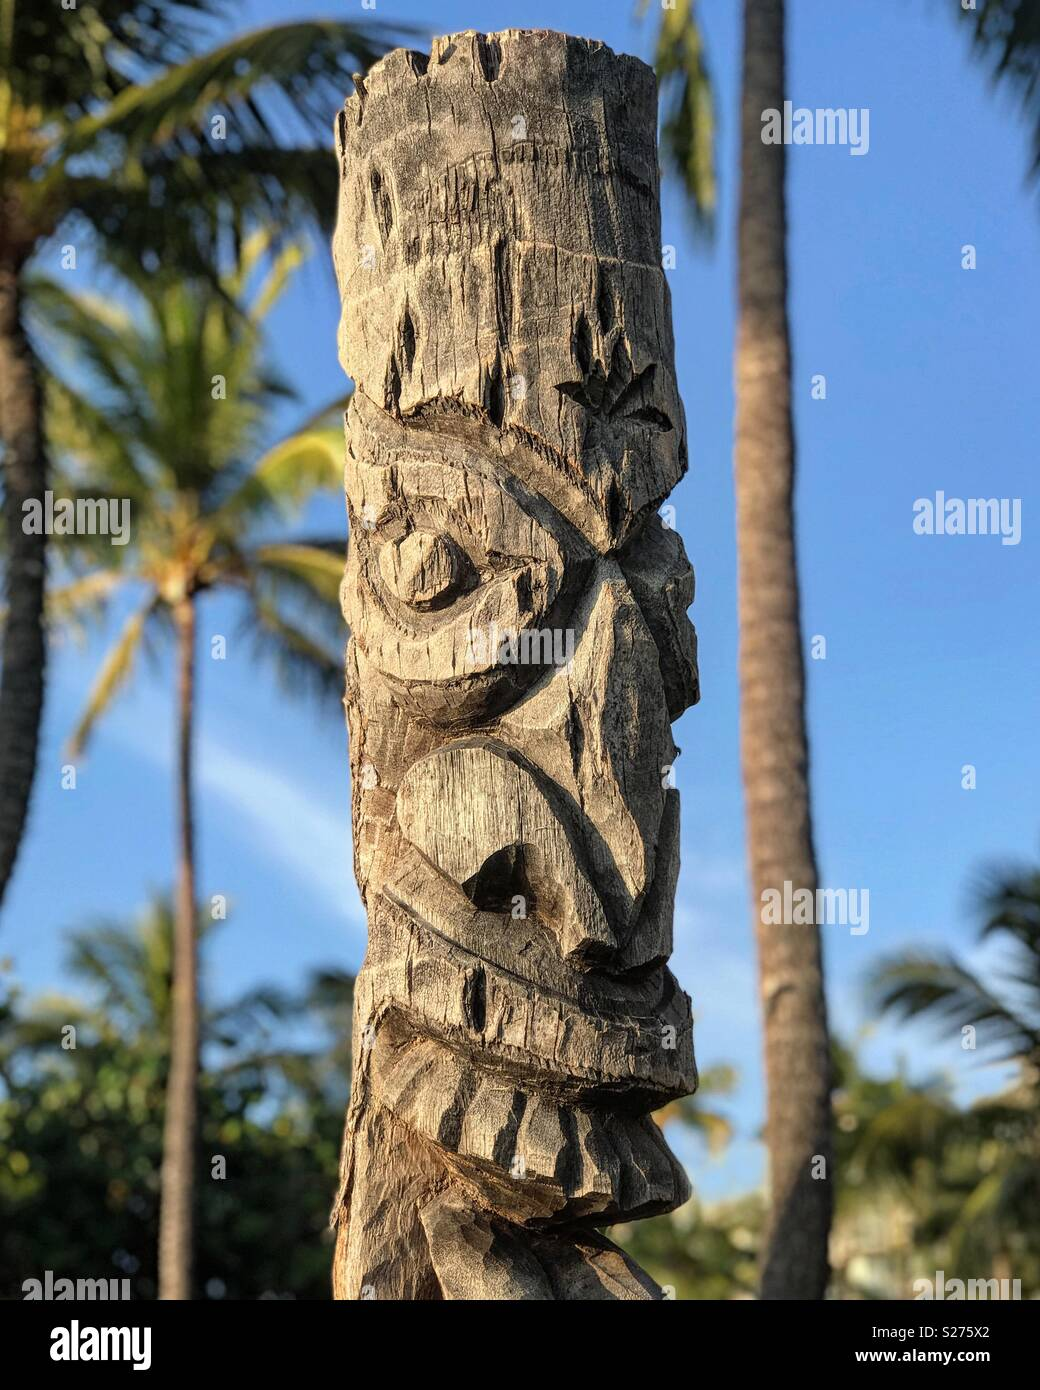 In Hawaii, a Polynesian tiki display is carved from the remaining trunk remnants of a cut down palm tree. - Stock Image